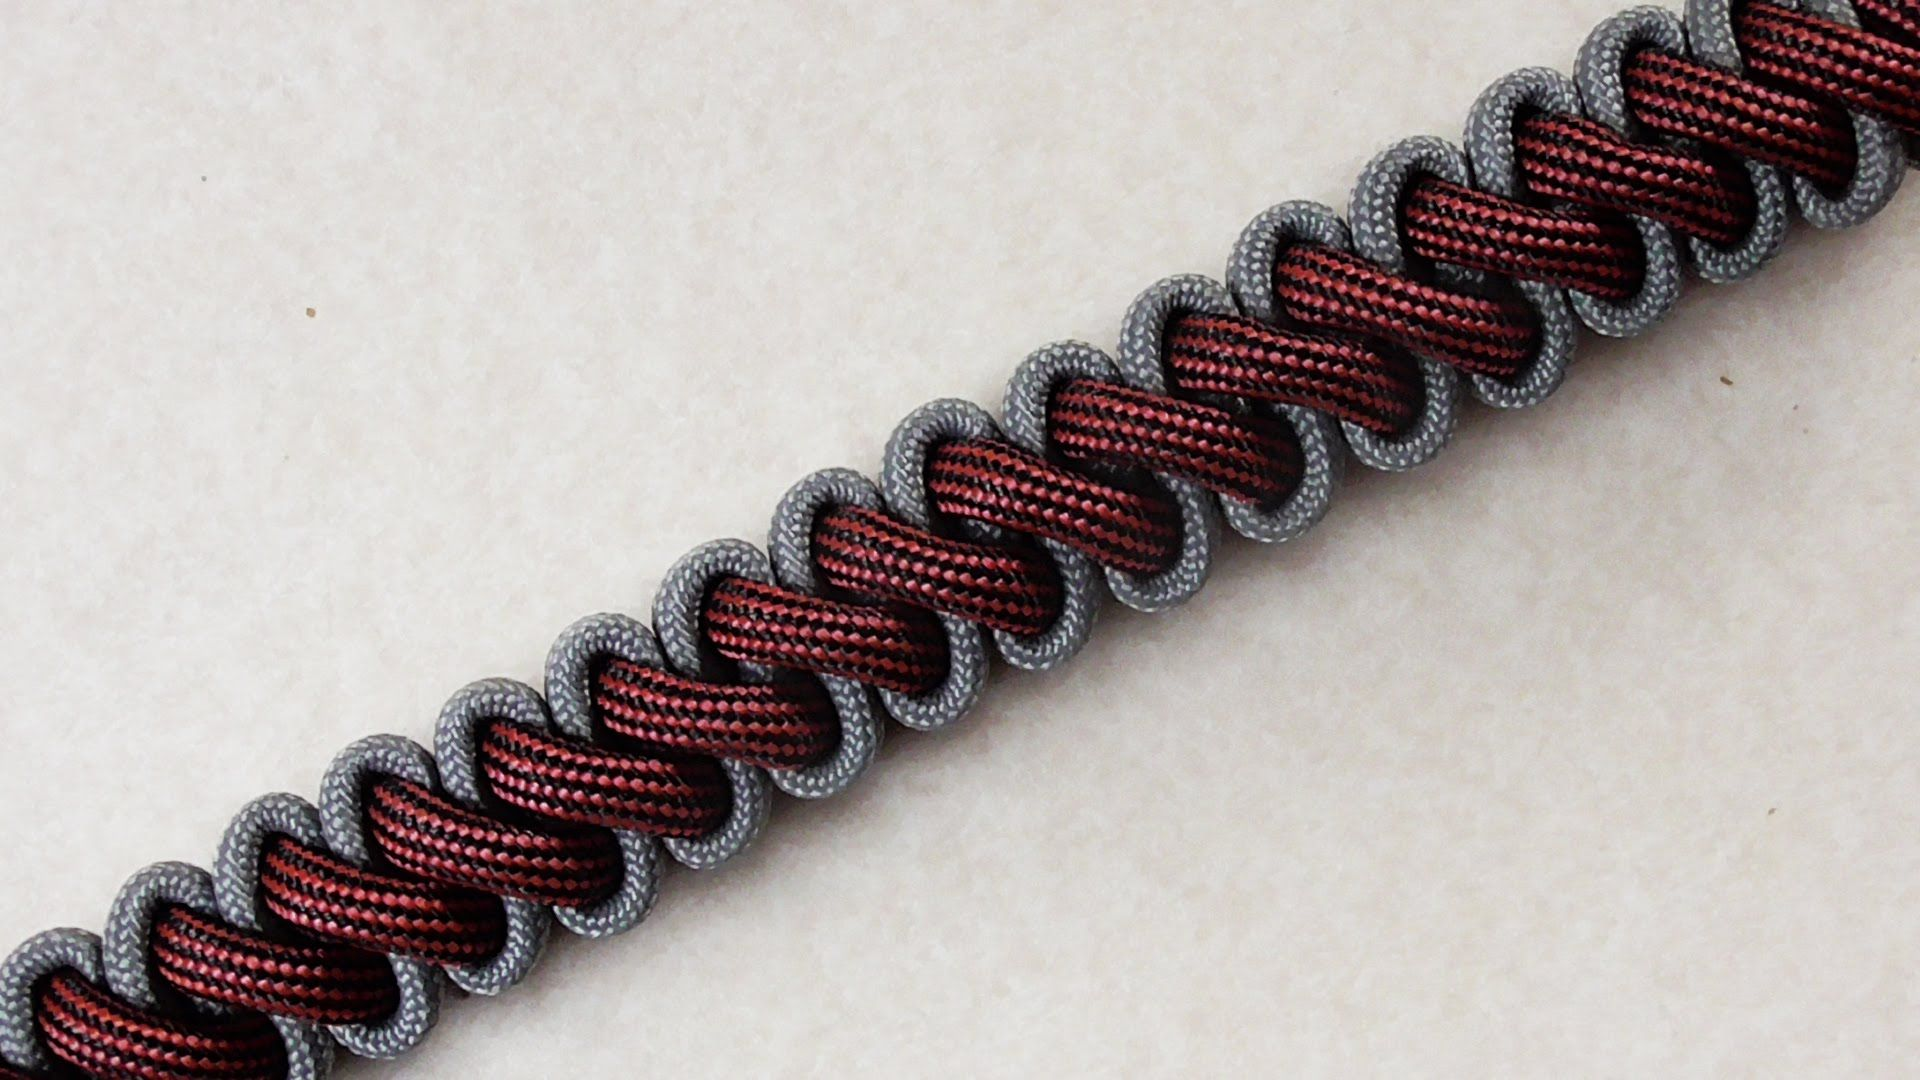 How To Tie A Bootlace Paracord Survival Bracelet Without Buckle Paracord